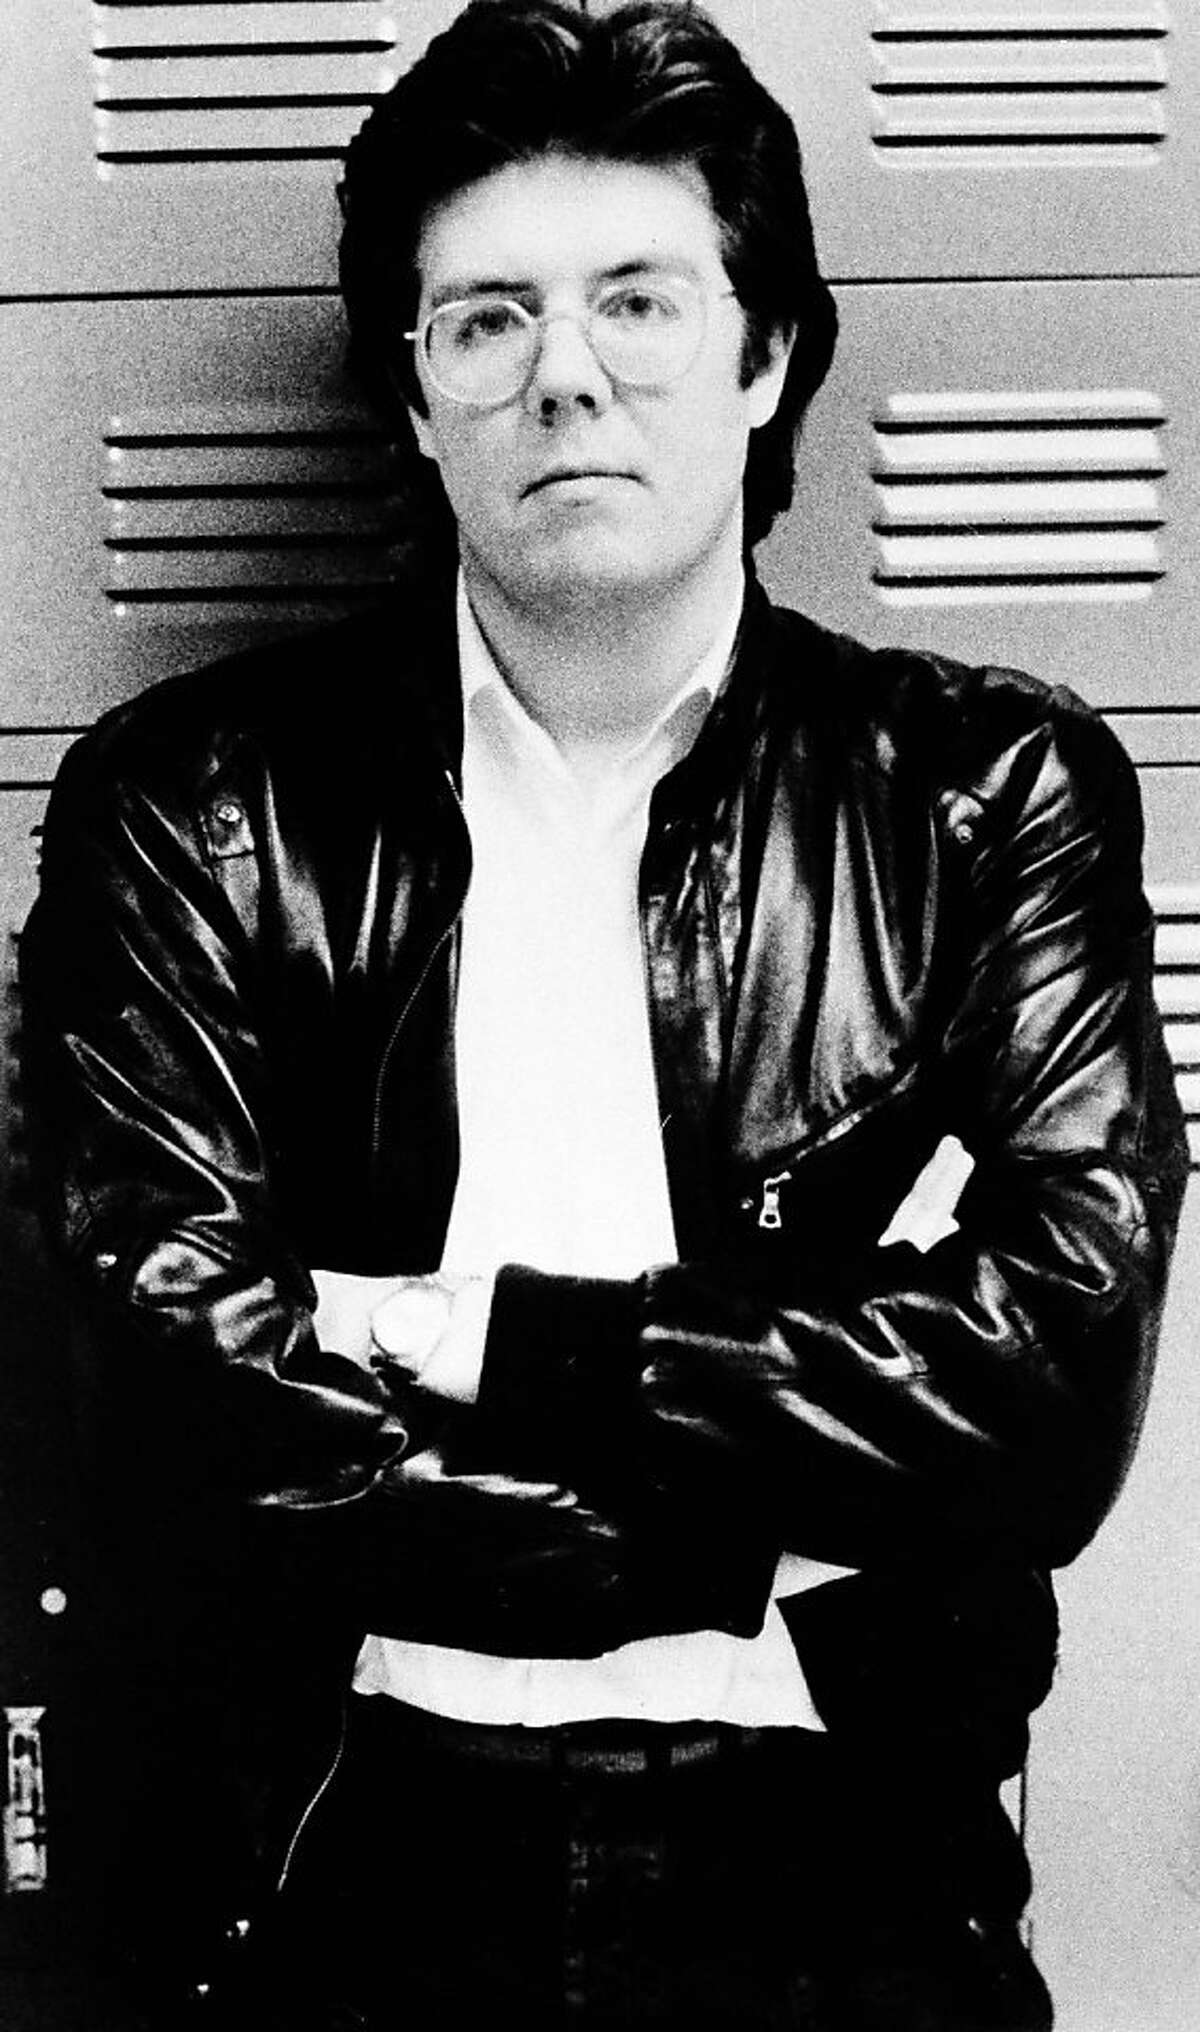 John Hughes was an American filmmaker who, during the 1980s, was involved in films that both identified and defined the decade. His career spans 4 decades and 35 films. Hughes died from a heart attack in 2009, he was 59. Here is a list of movies that John Hughes either wrote, produced or directed during the 1980s. They range from PG family fun to PG-13 teen angst and slapstick. He did a few others, but these were the best and remain classics.